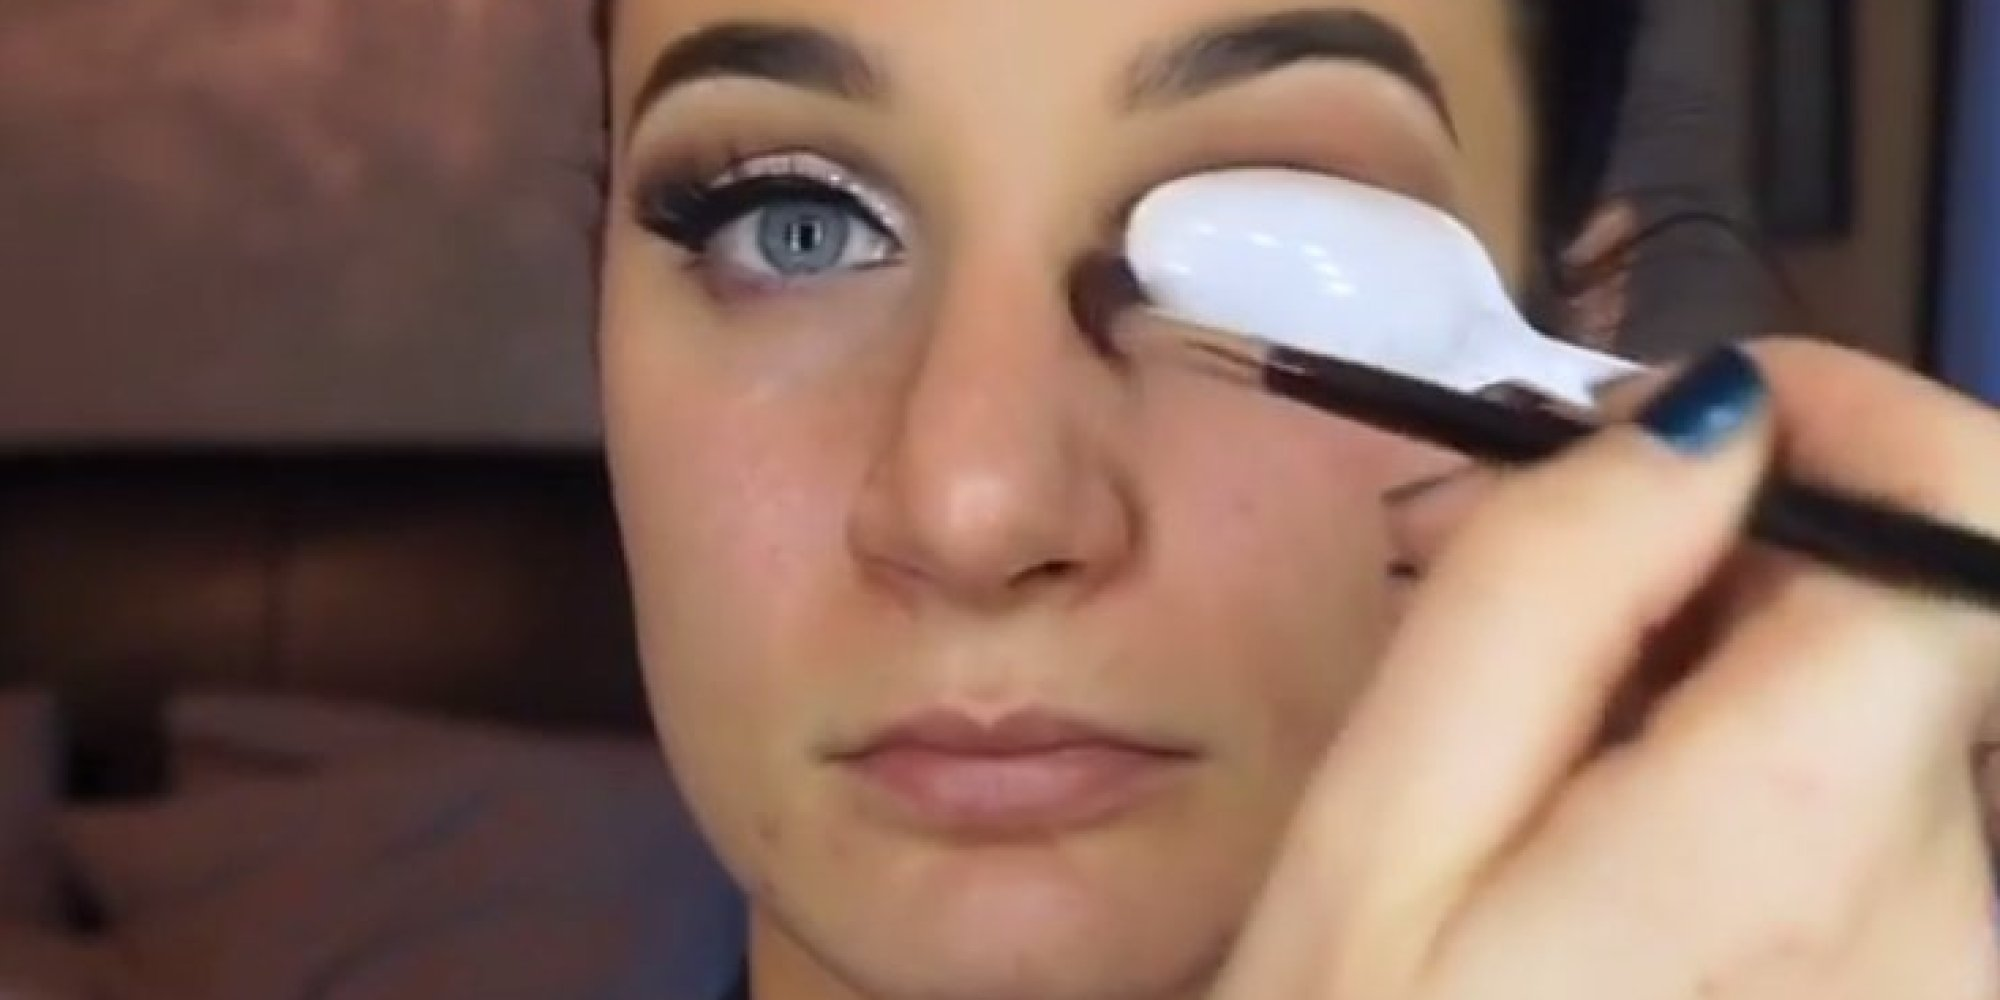 This Spoon Hack Will Give You That Perfect Cut Crease Eye